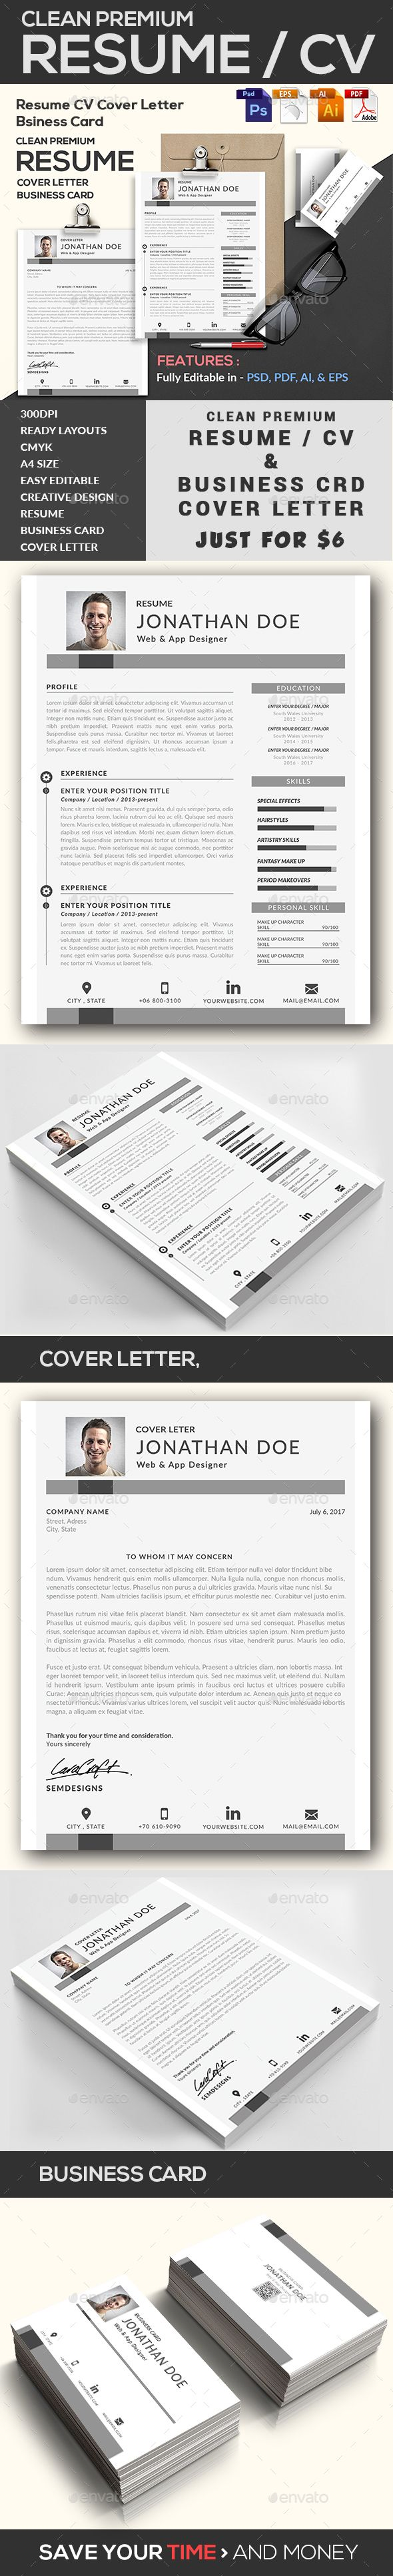 pin by fdesign nerd on cv resume template guaranteed to